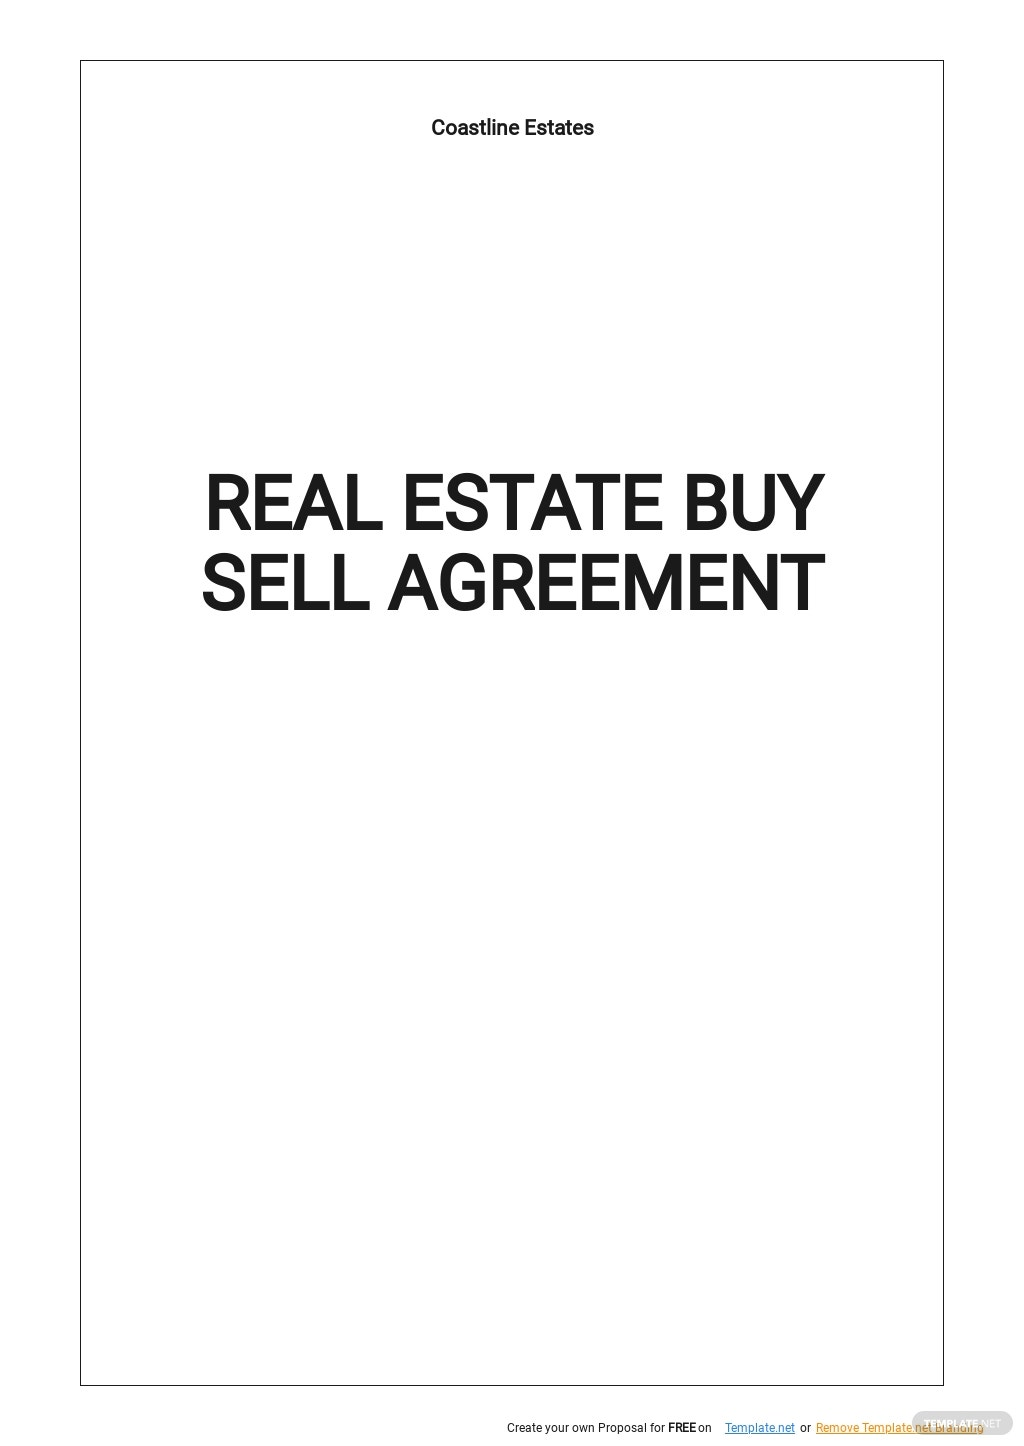 Real Estate Buy Sell Agreement Template.jpe